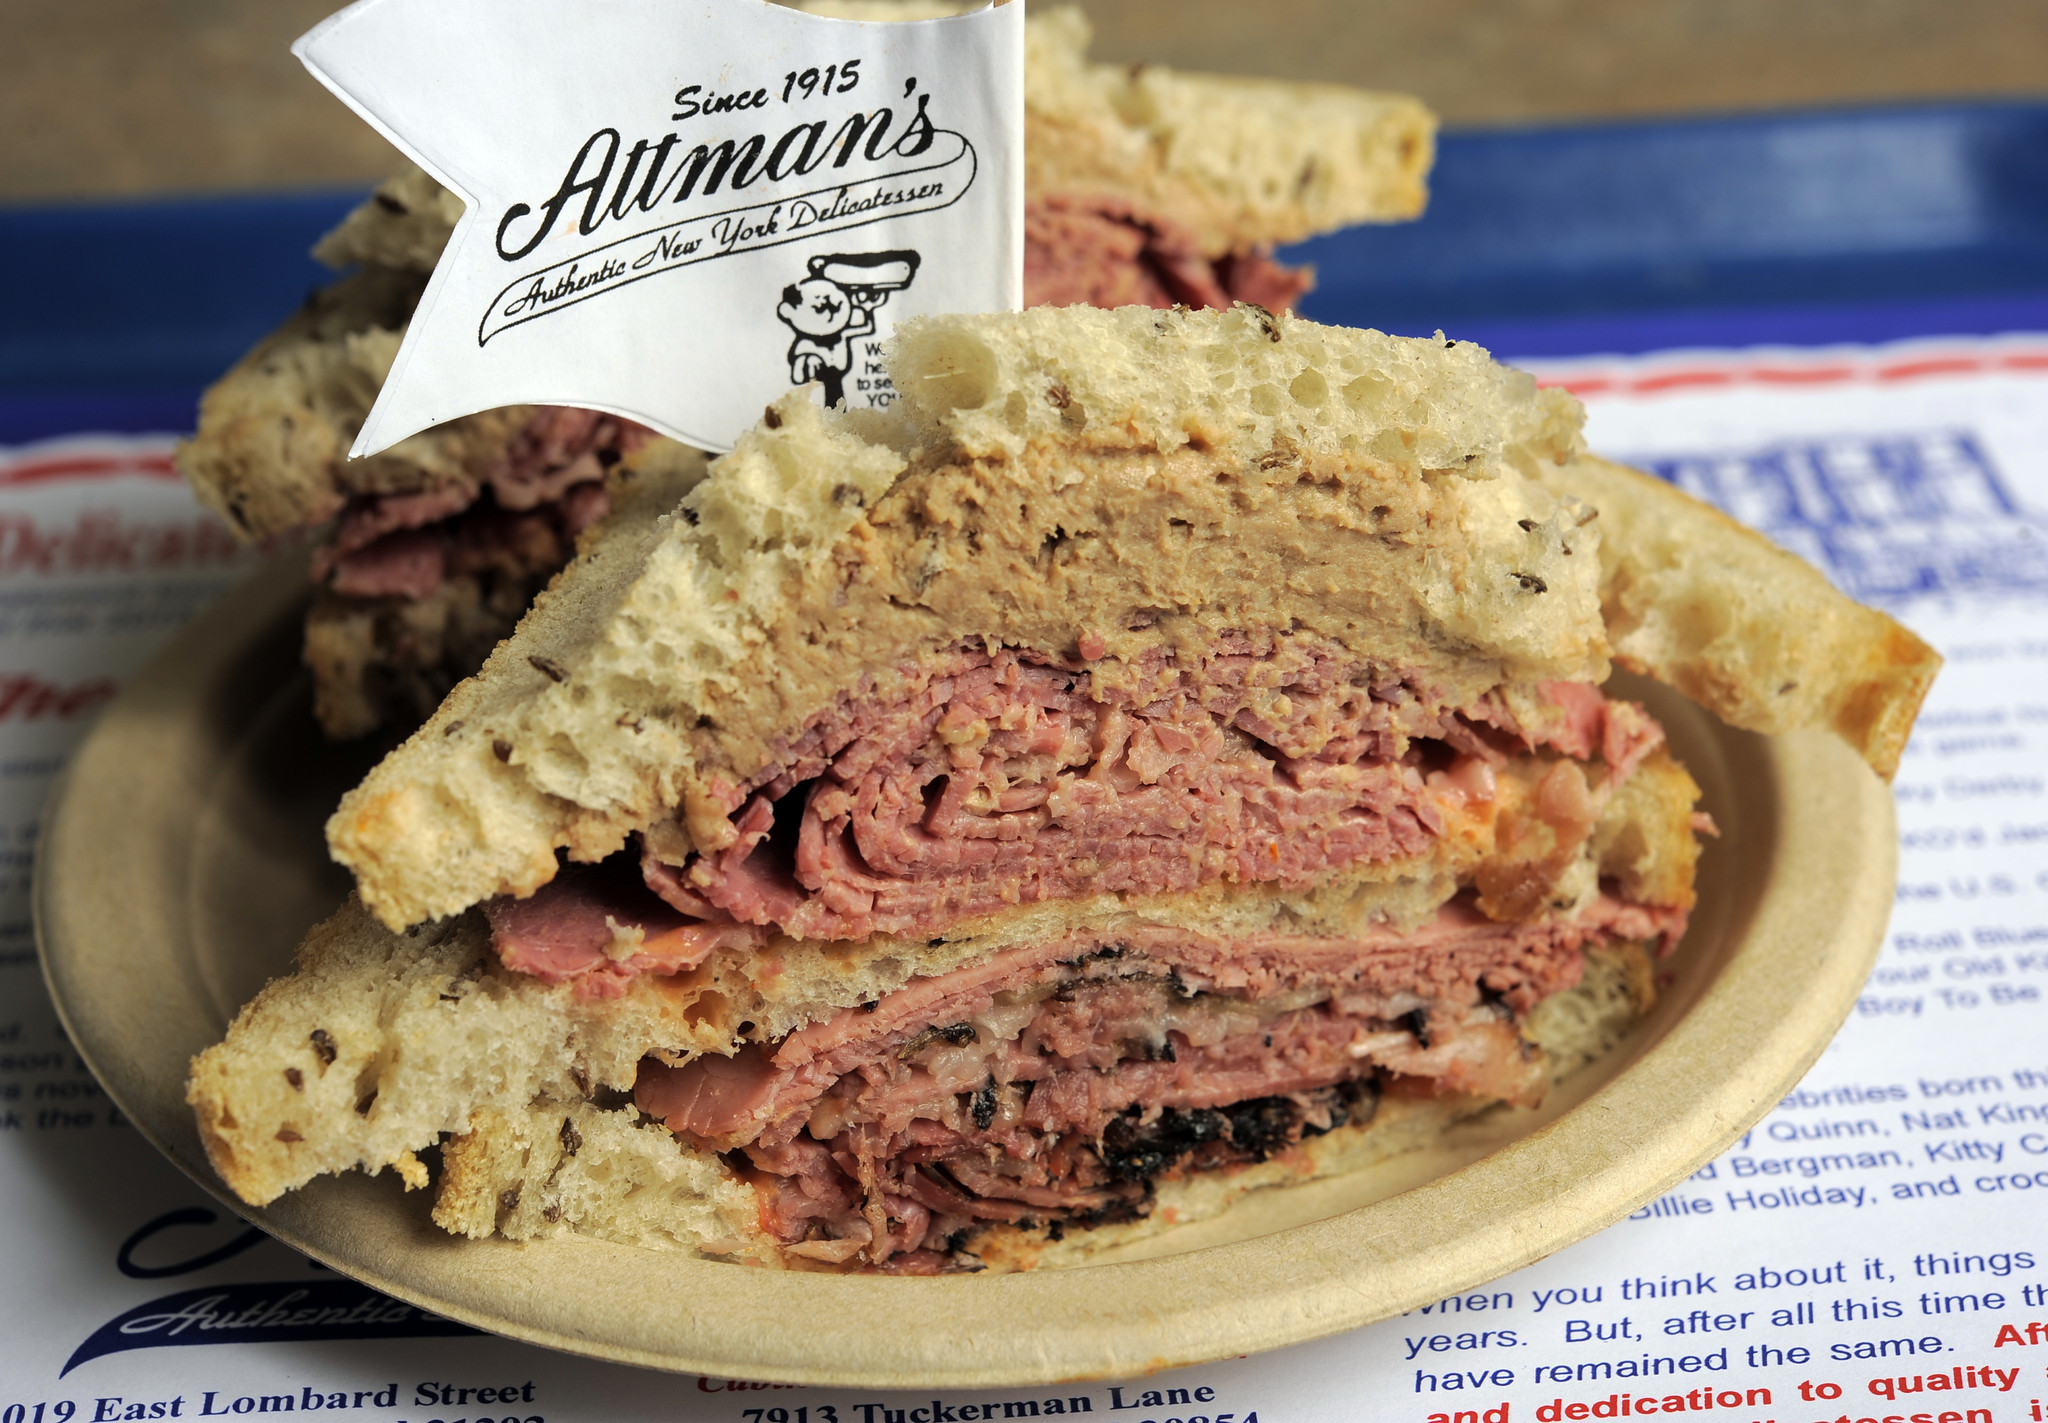 50 things Baltimore foodies must try [Pictures] - Corned beef on rye at Attman